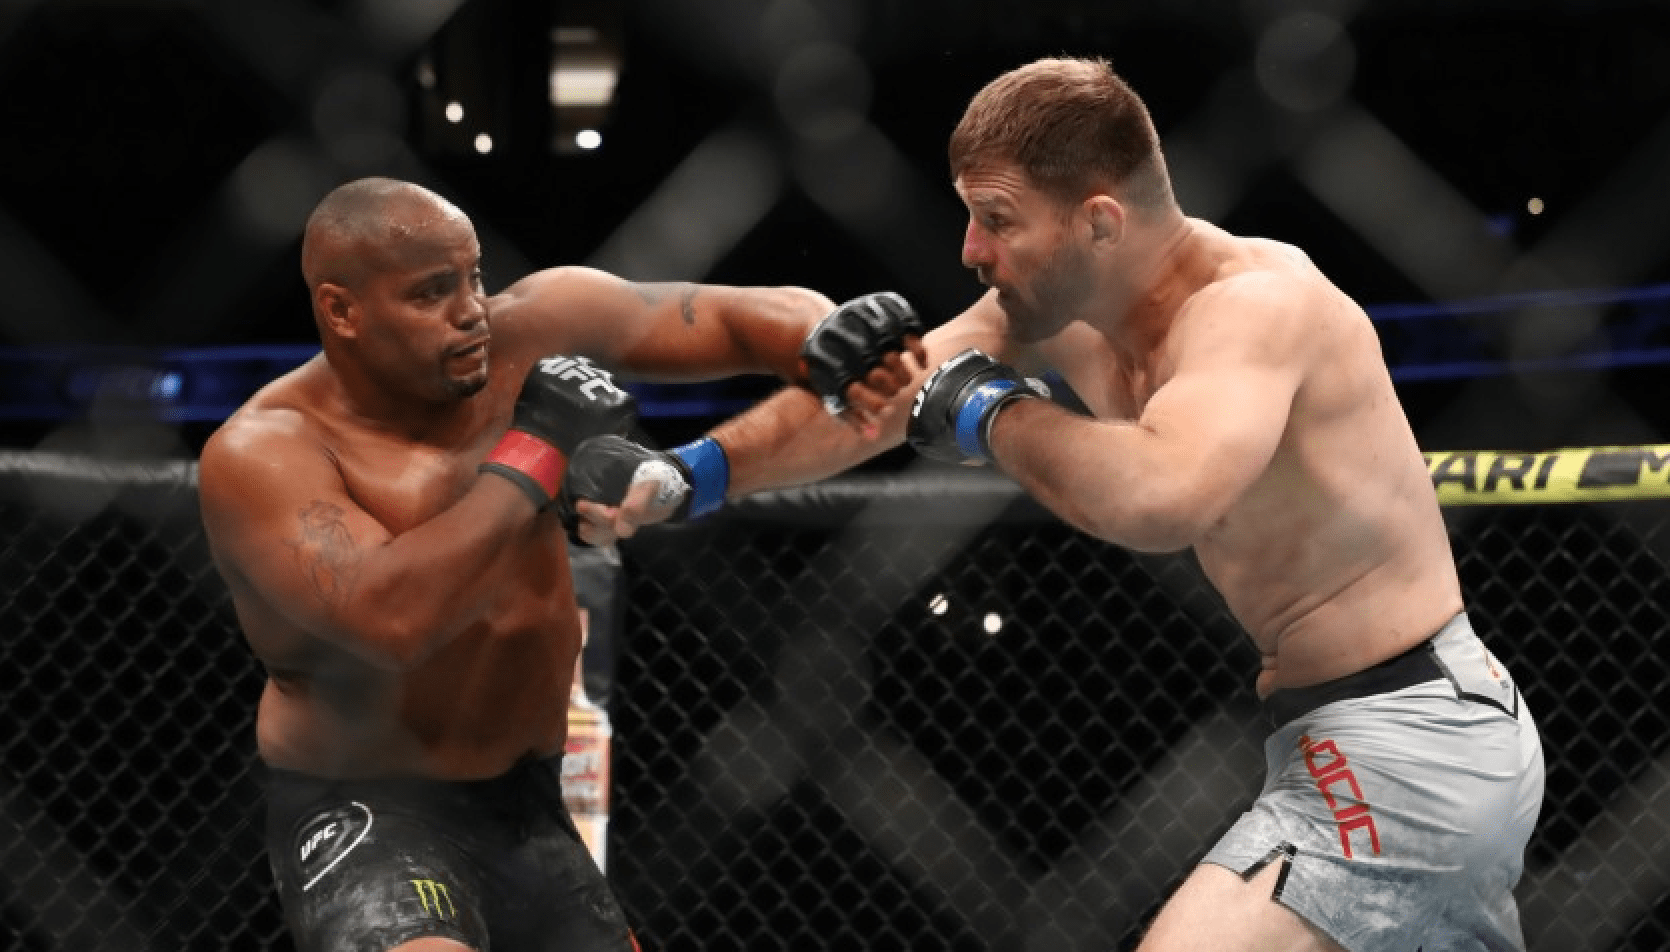 UFC: Miocic Responds To Cormier And Dana's Recent Comments